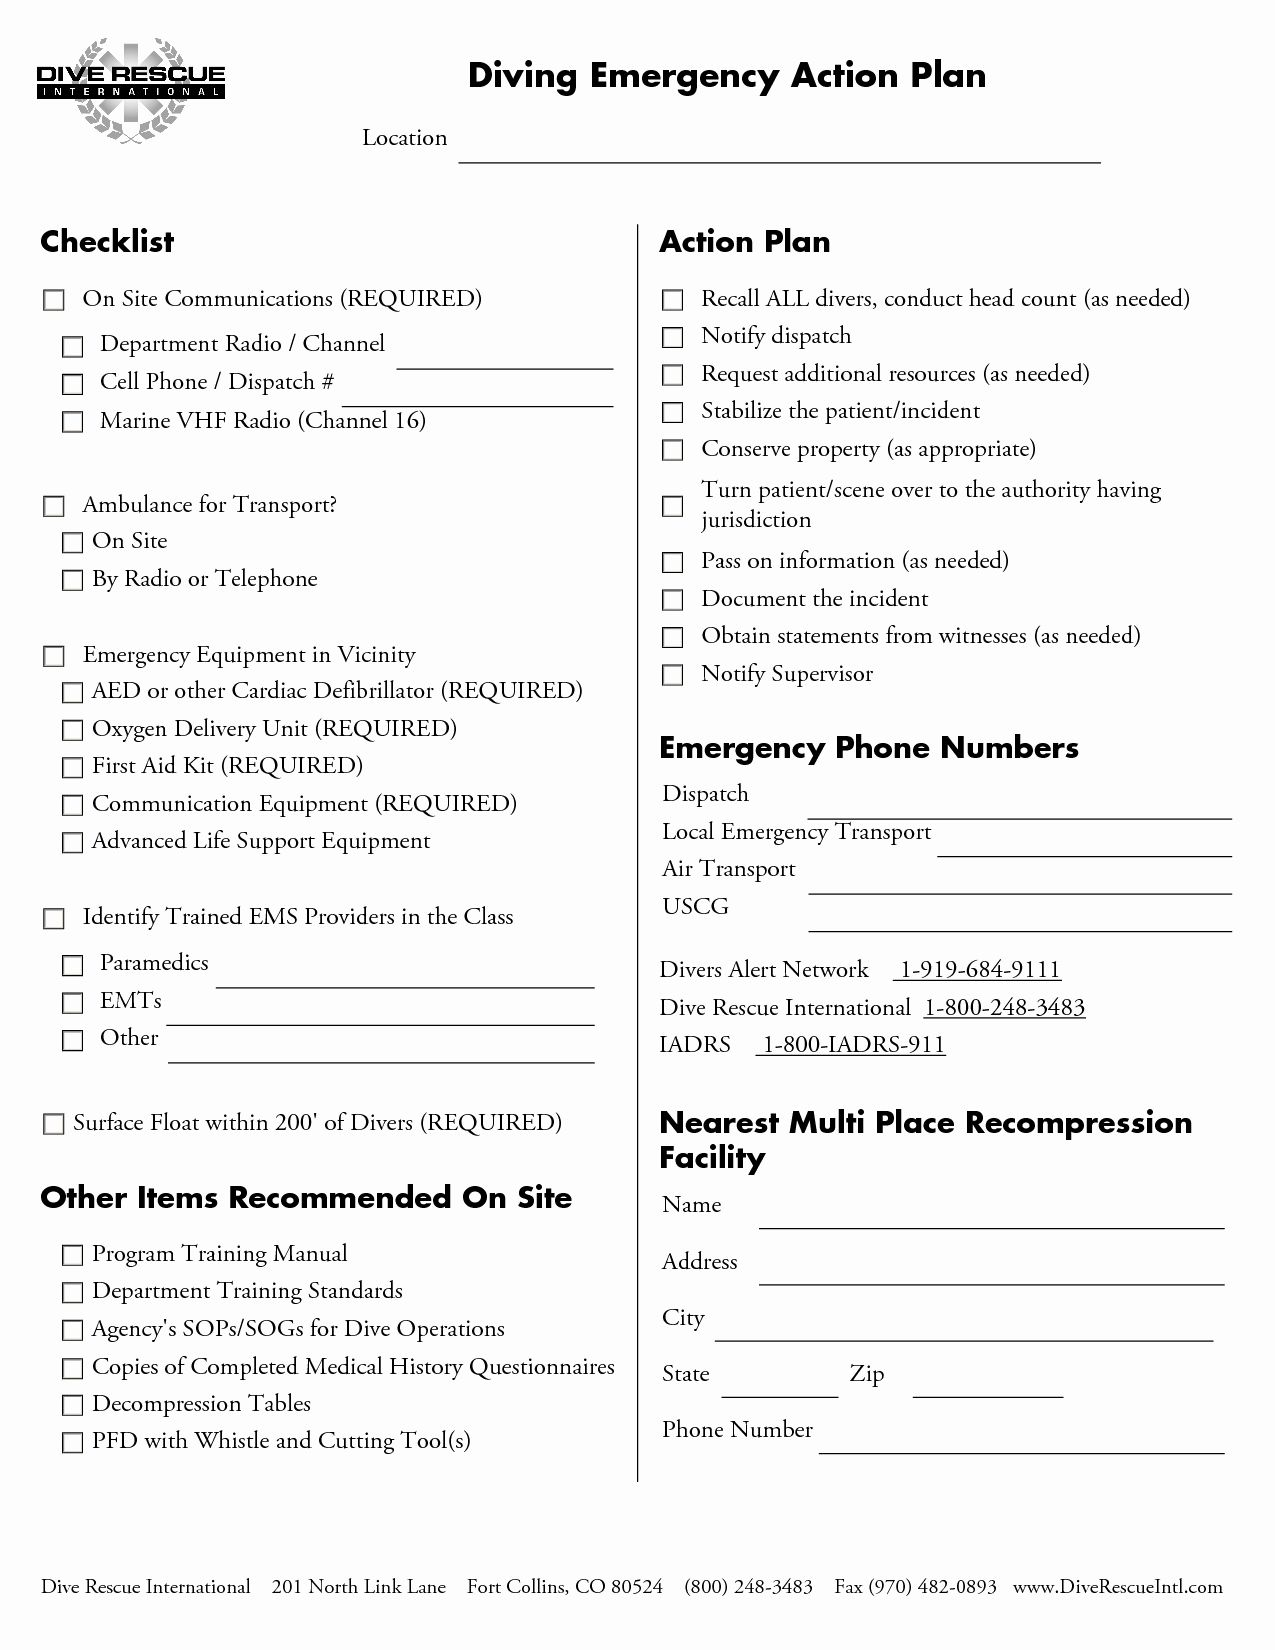 Osha Emergency Action Plan Template Inspirational